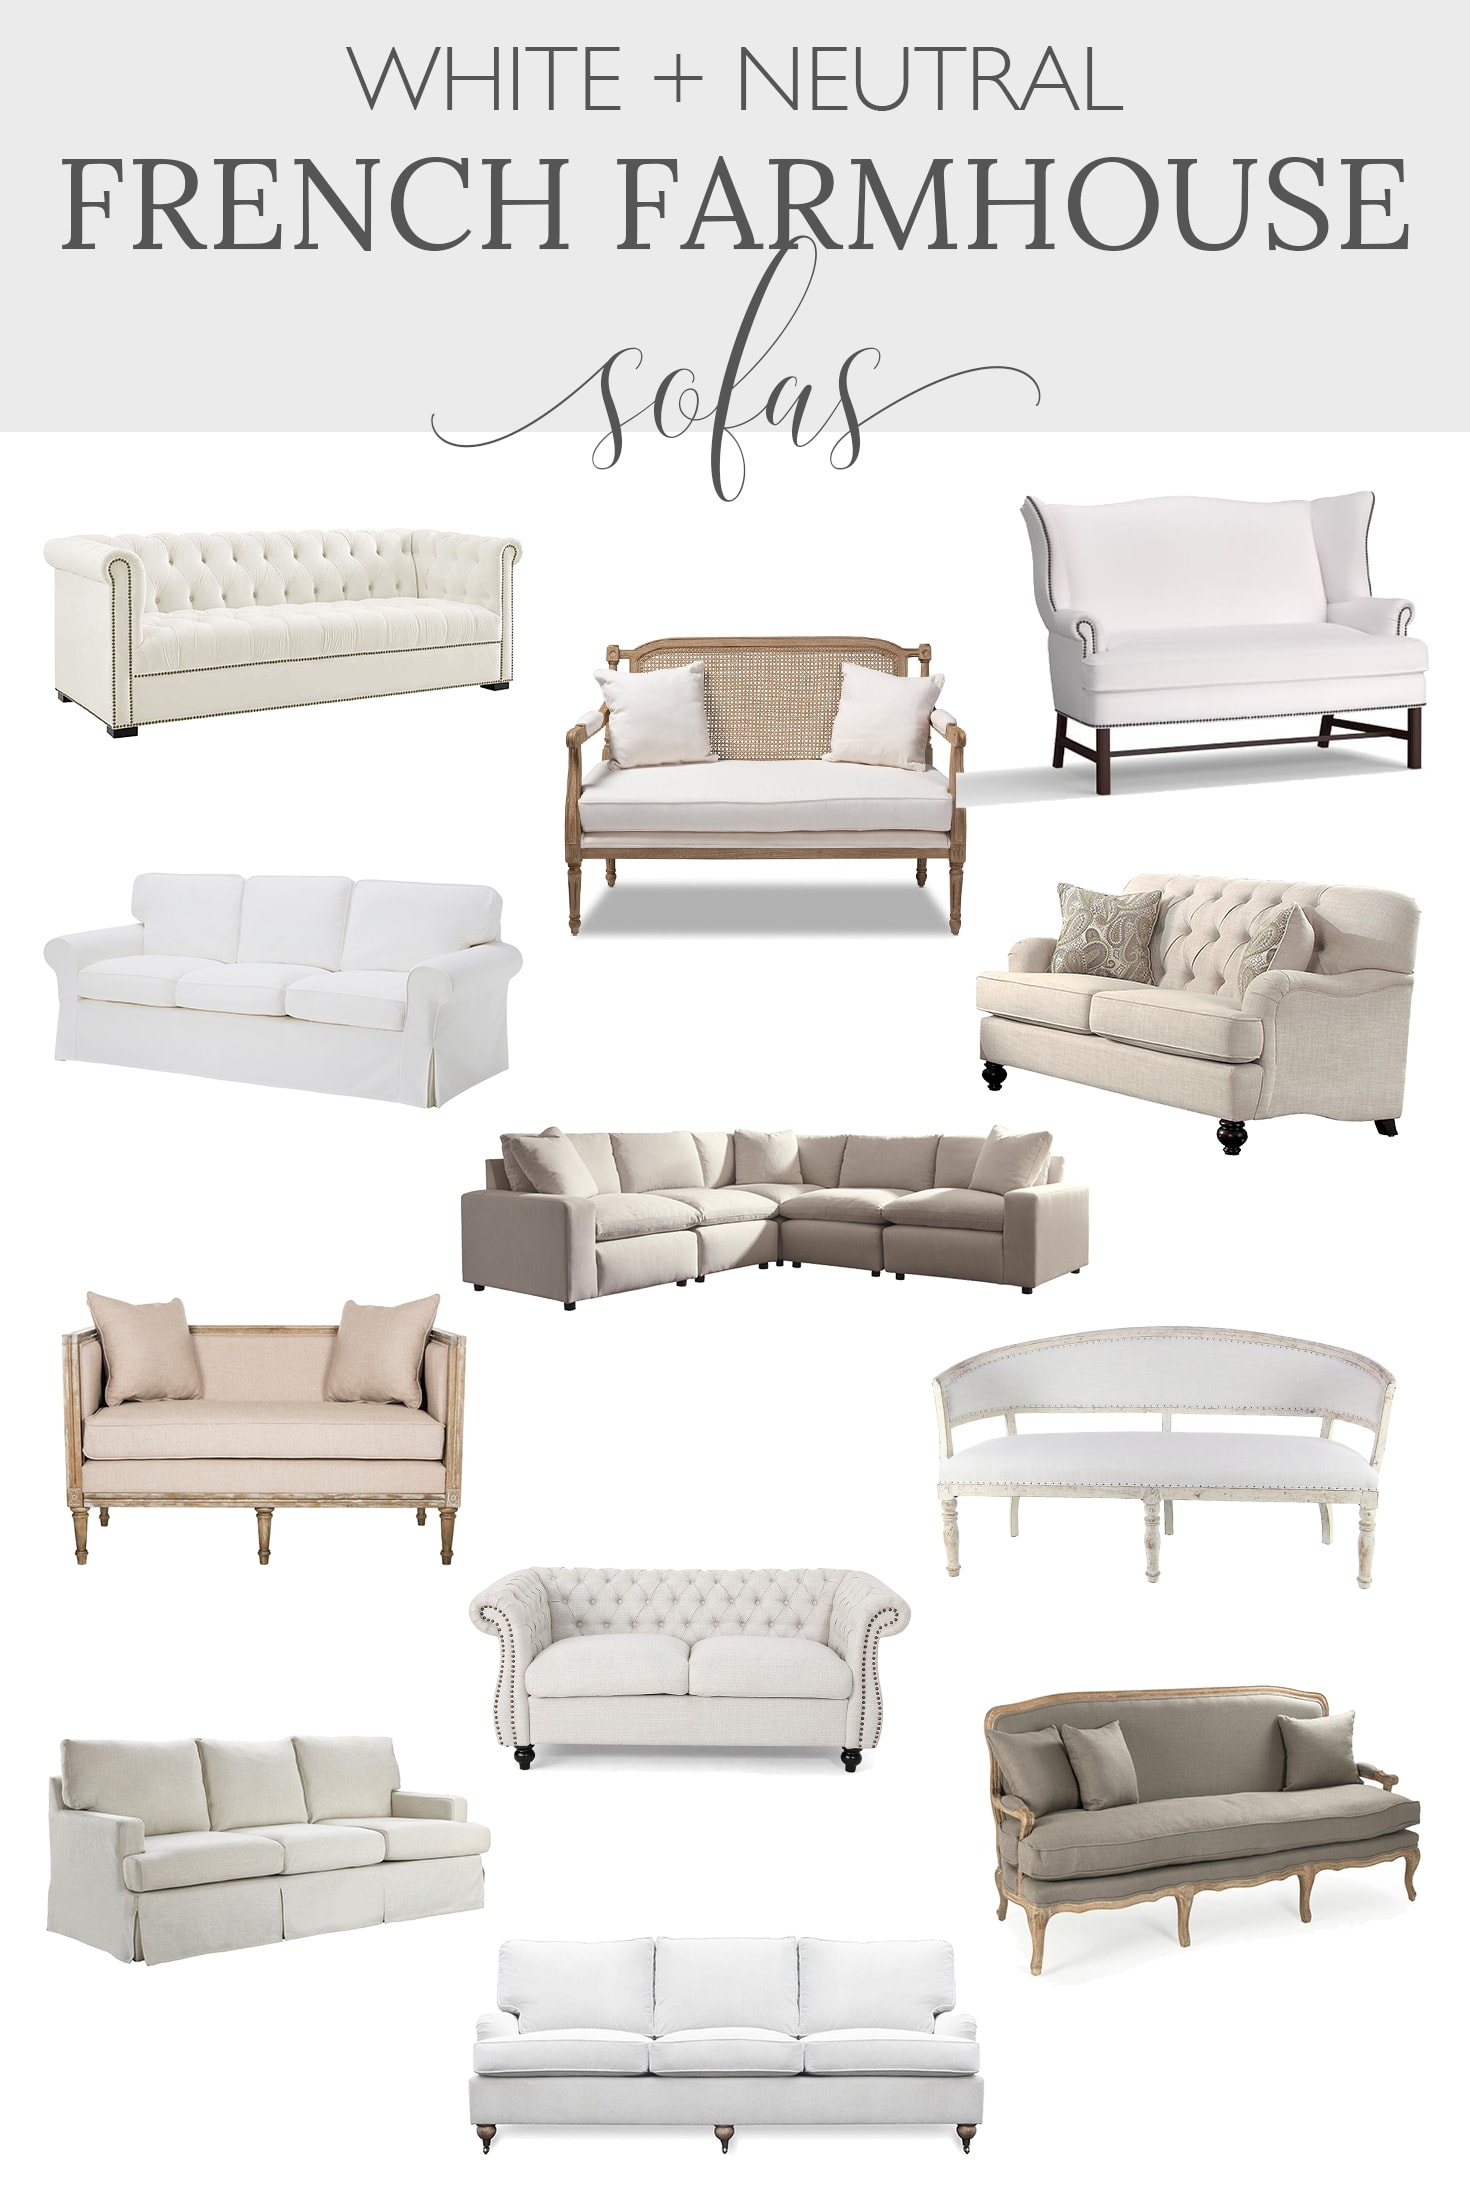 Farmhouse living room sofas